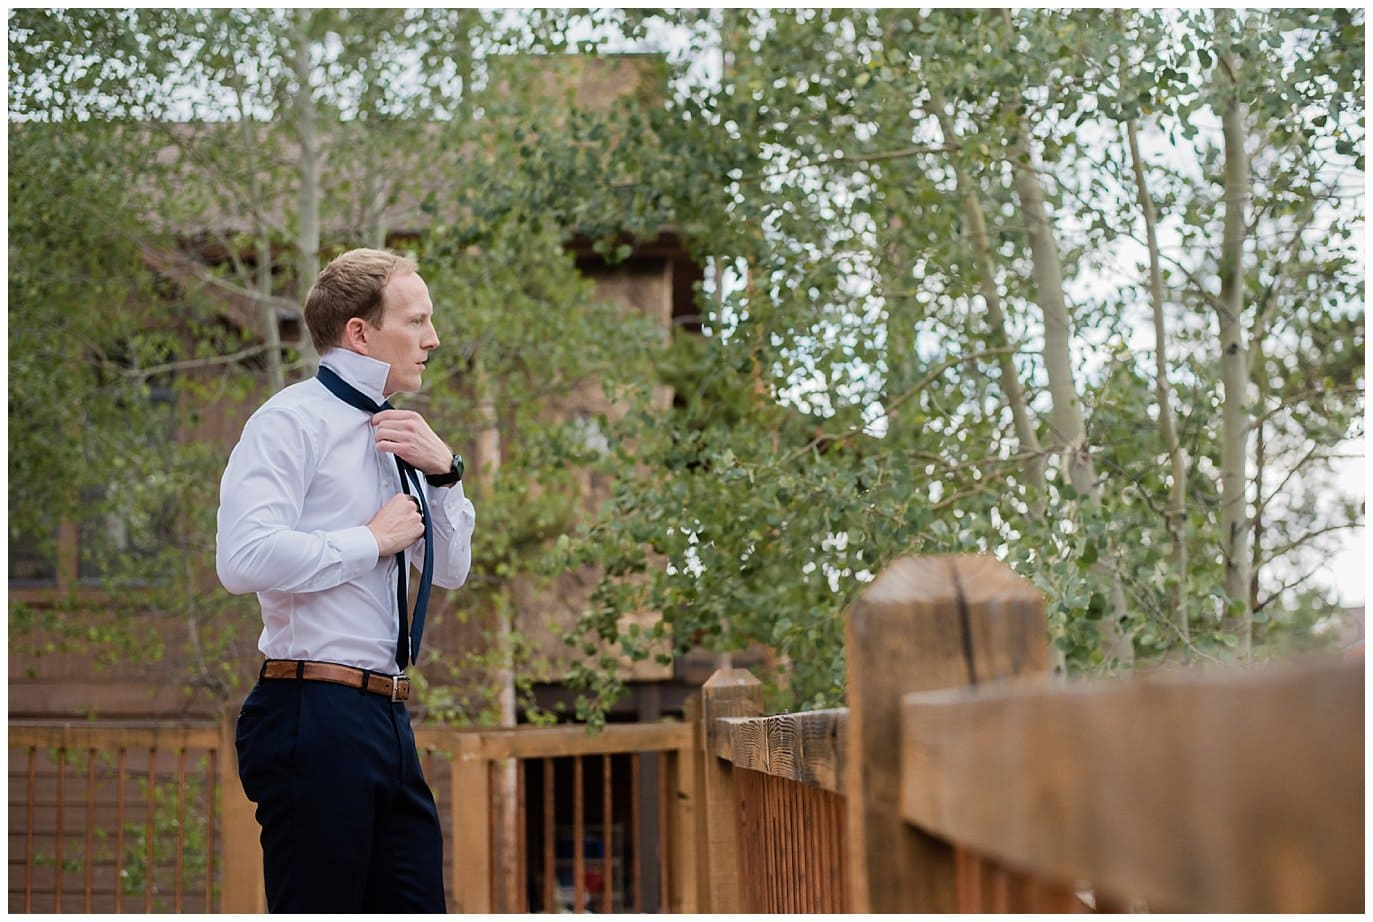 groom getting ready on deck of private home at Arapahoe Basin Black Mountain Lodge Wedding by Keystone Wedding Photographer Jennie Crate